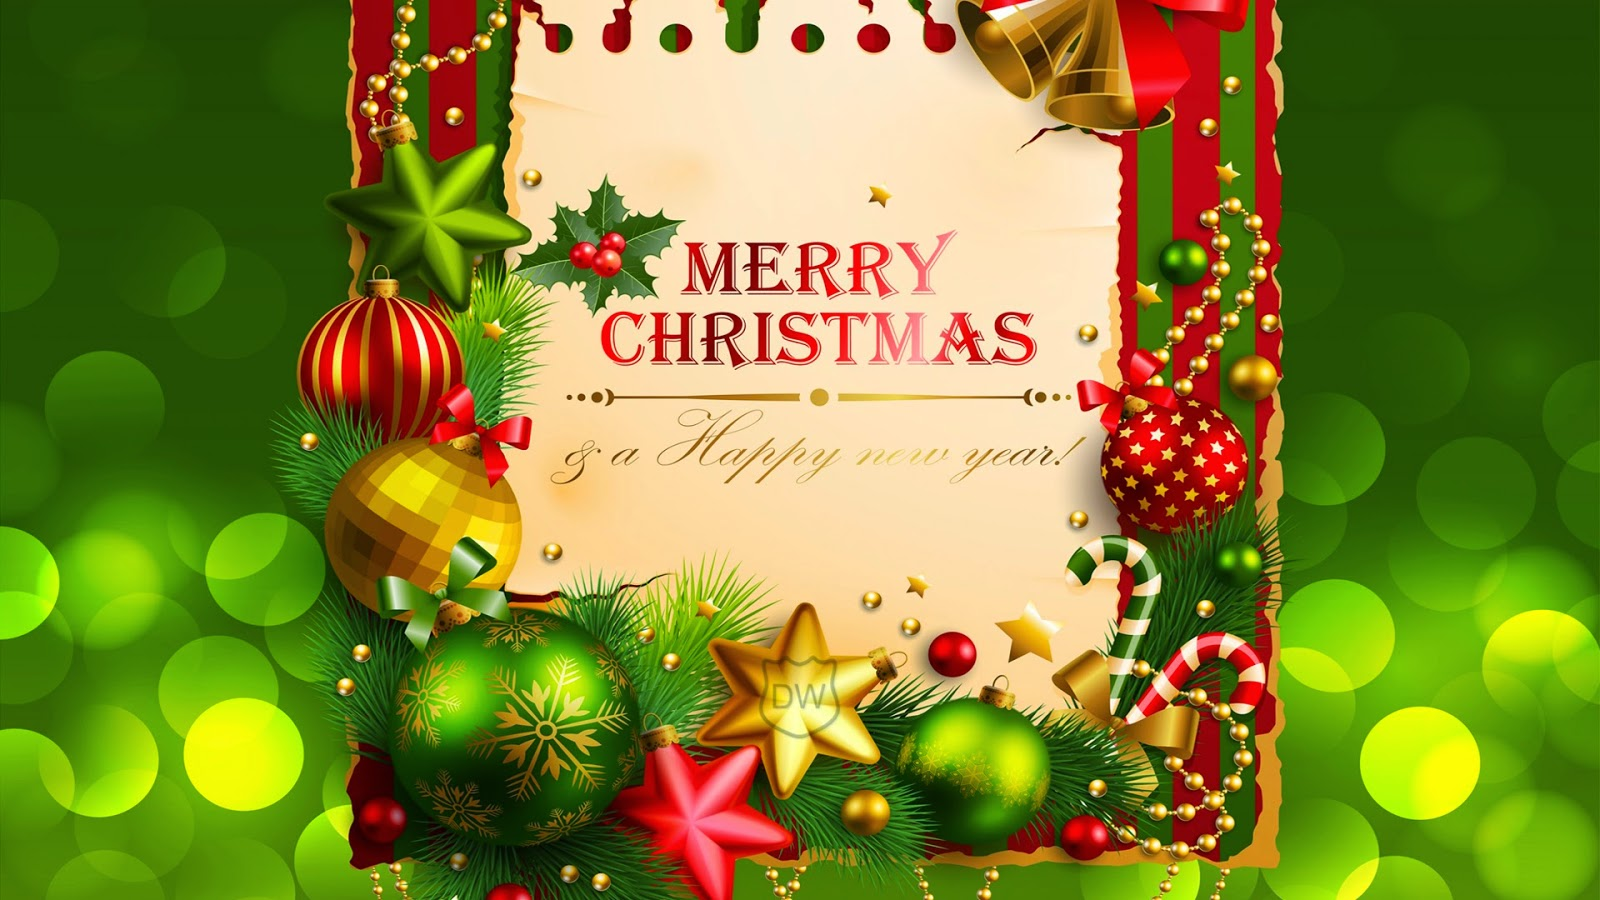 Merry Christmas Wallpaper 2015 HD